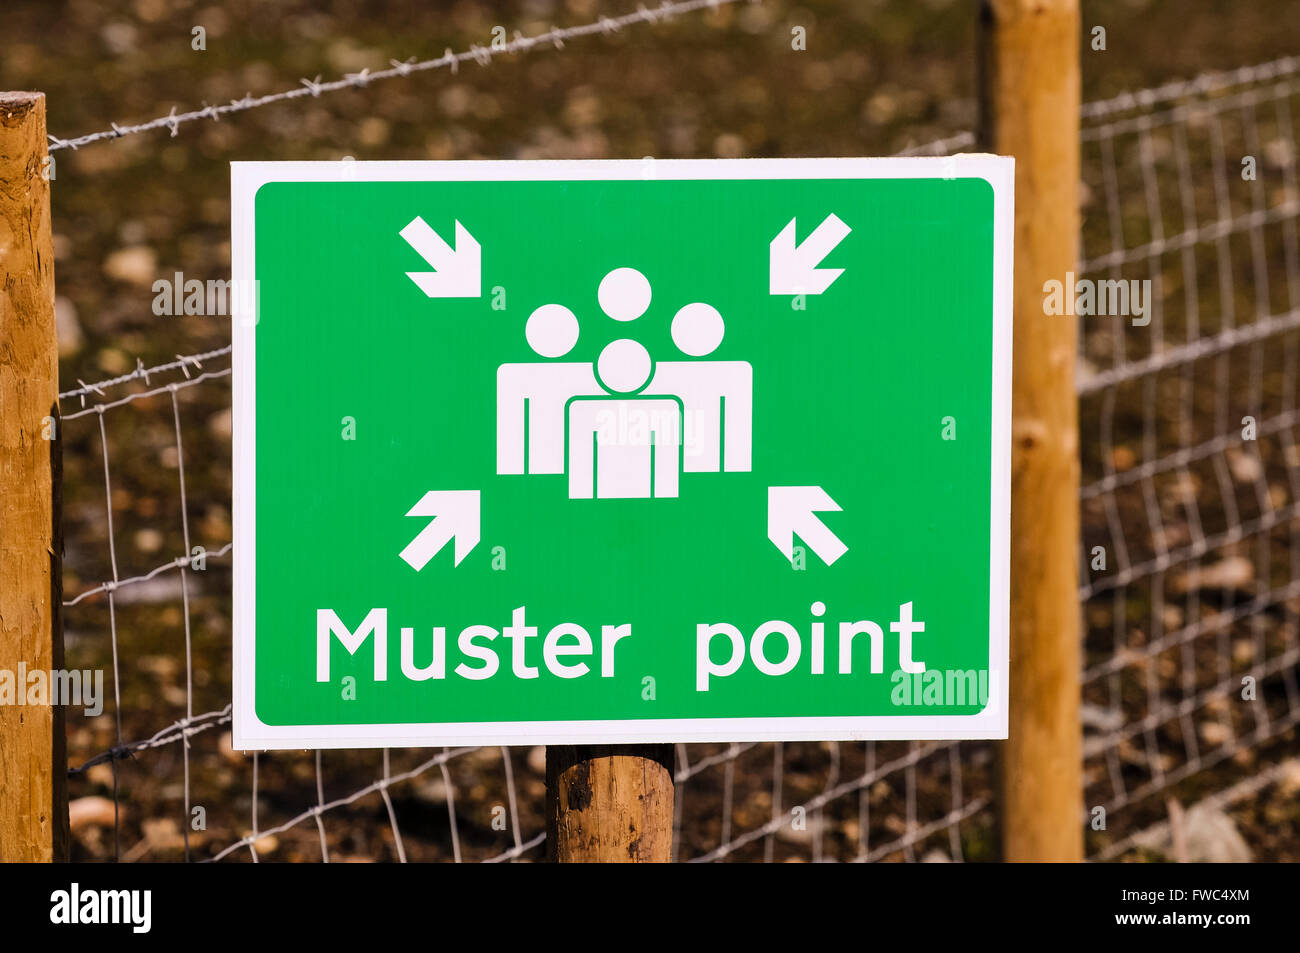 Emergency muster point on a construction site. - Stock Image